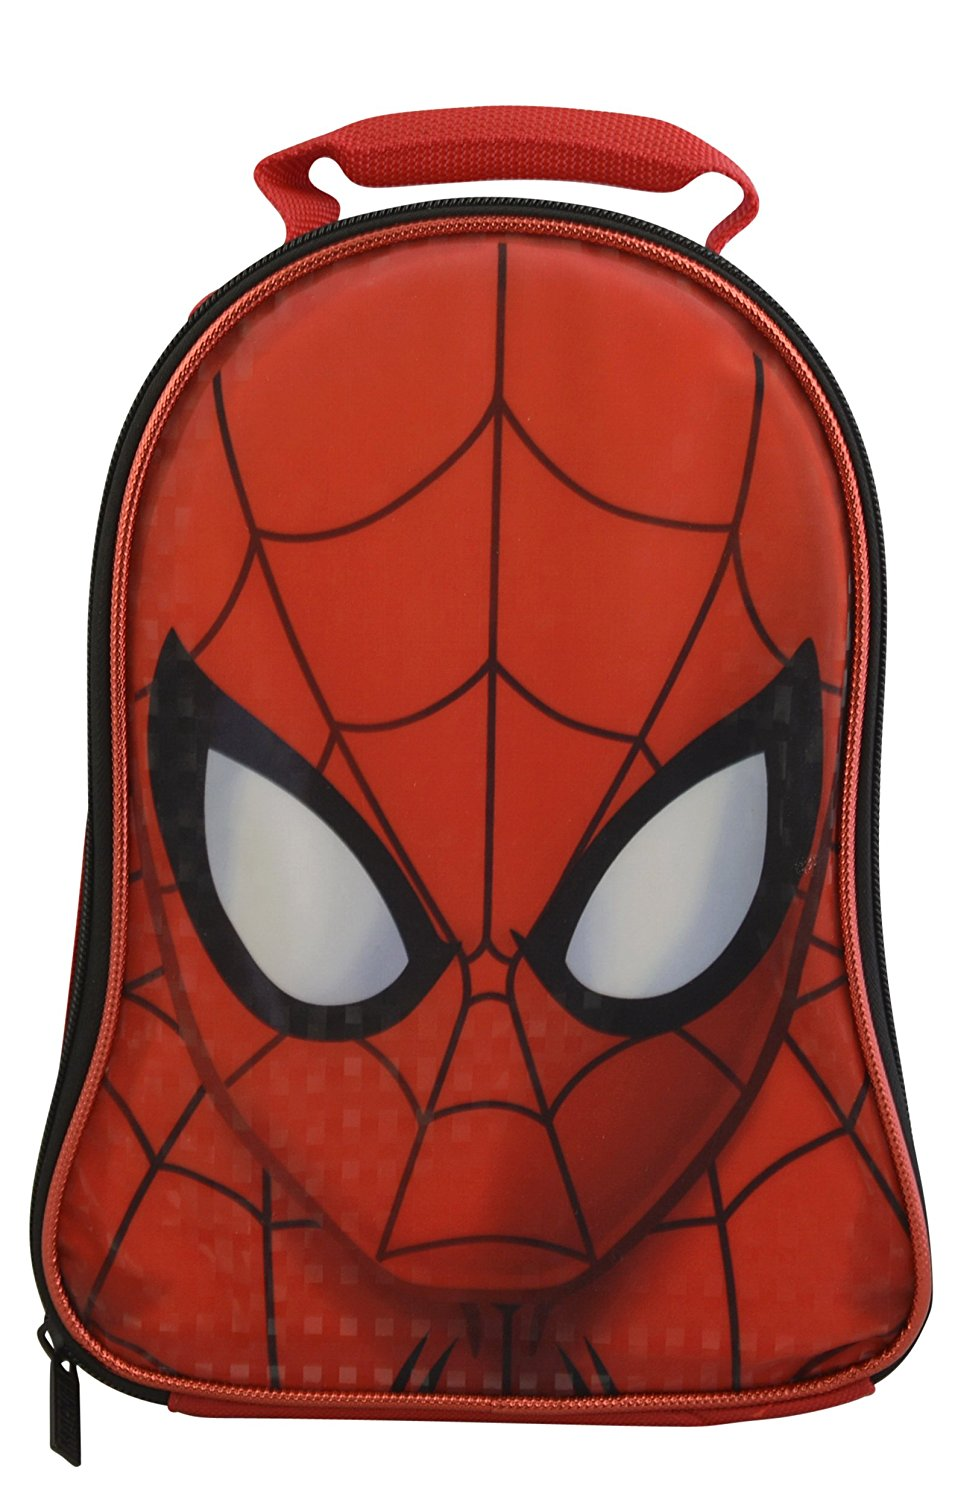 Marvel Avengers Spiderman Civil War Superheroes Boys' Insulated Lunchbox Lunch Kit (Spiderman)